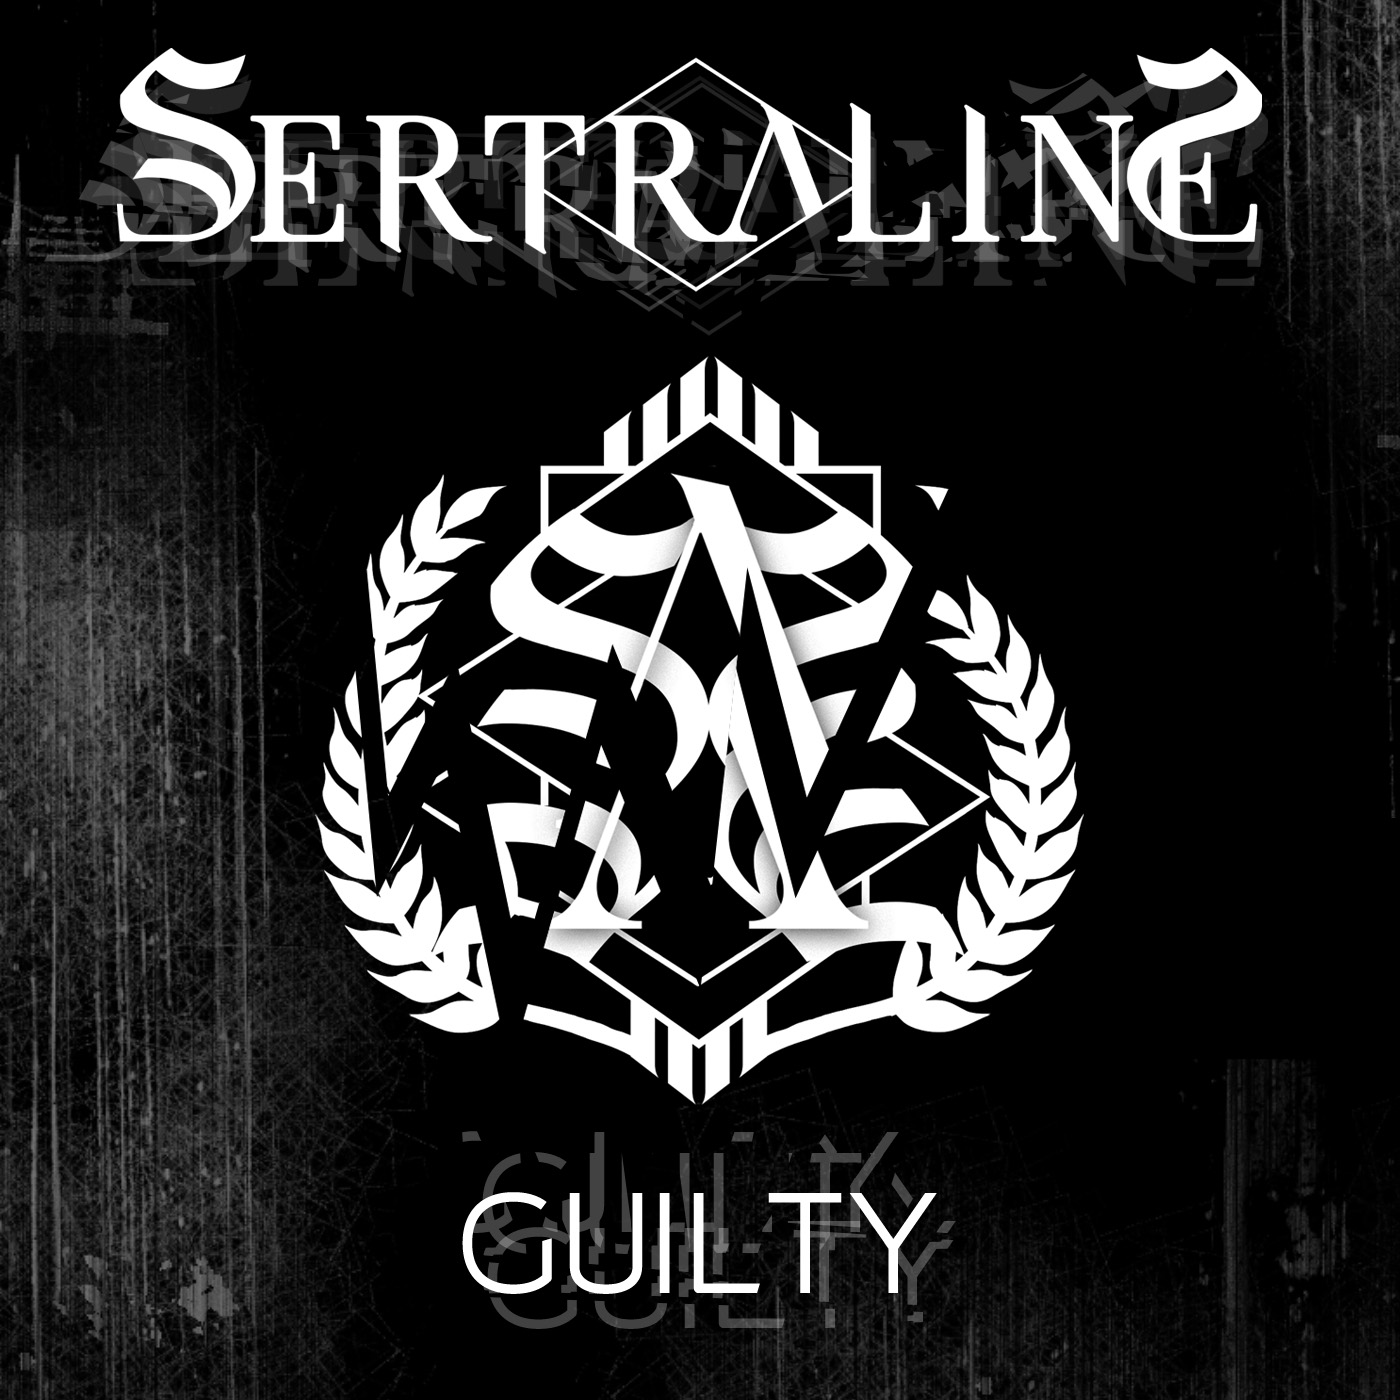 'Guilty' EP - Sertraline